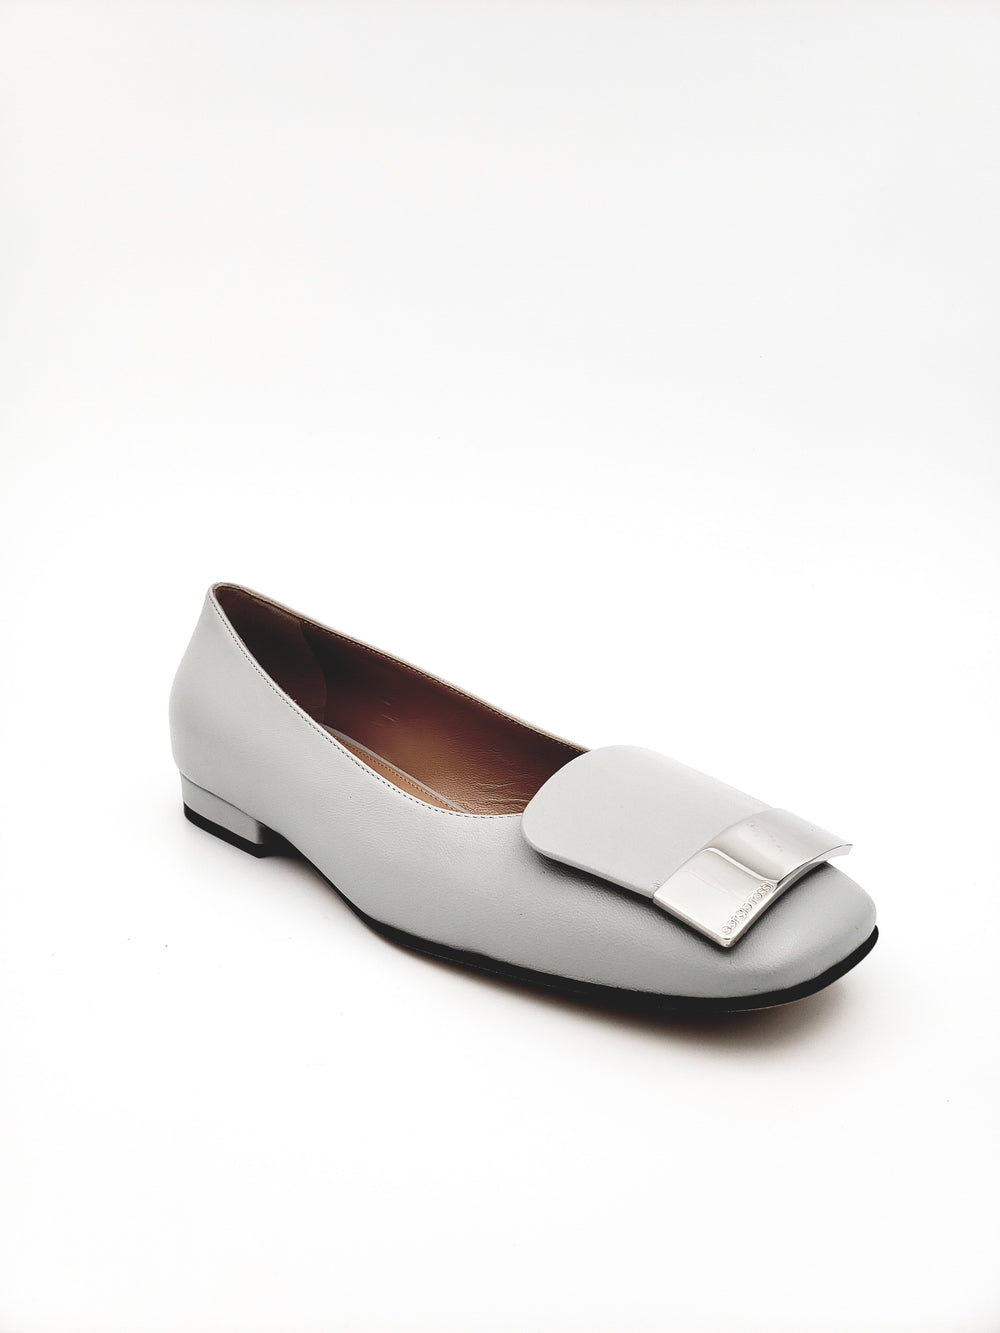 Sr1 Ballerinas Pale Grey Leather